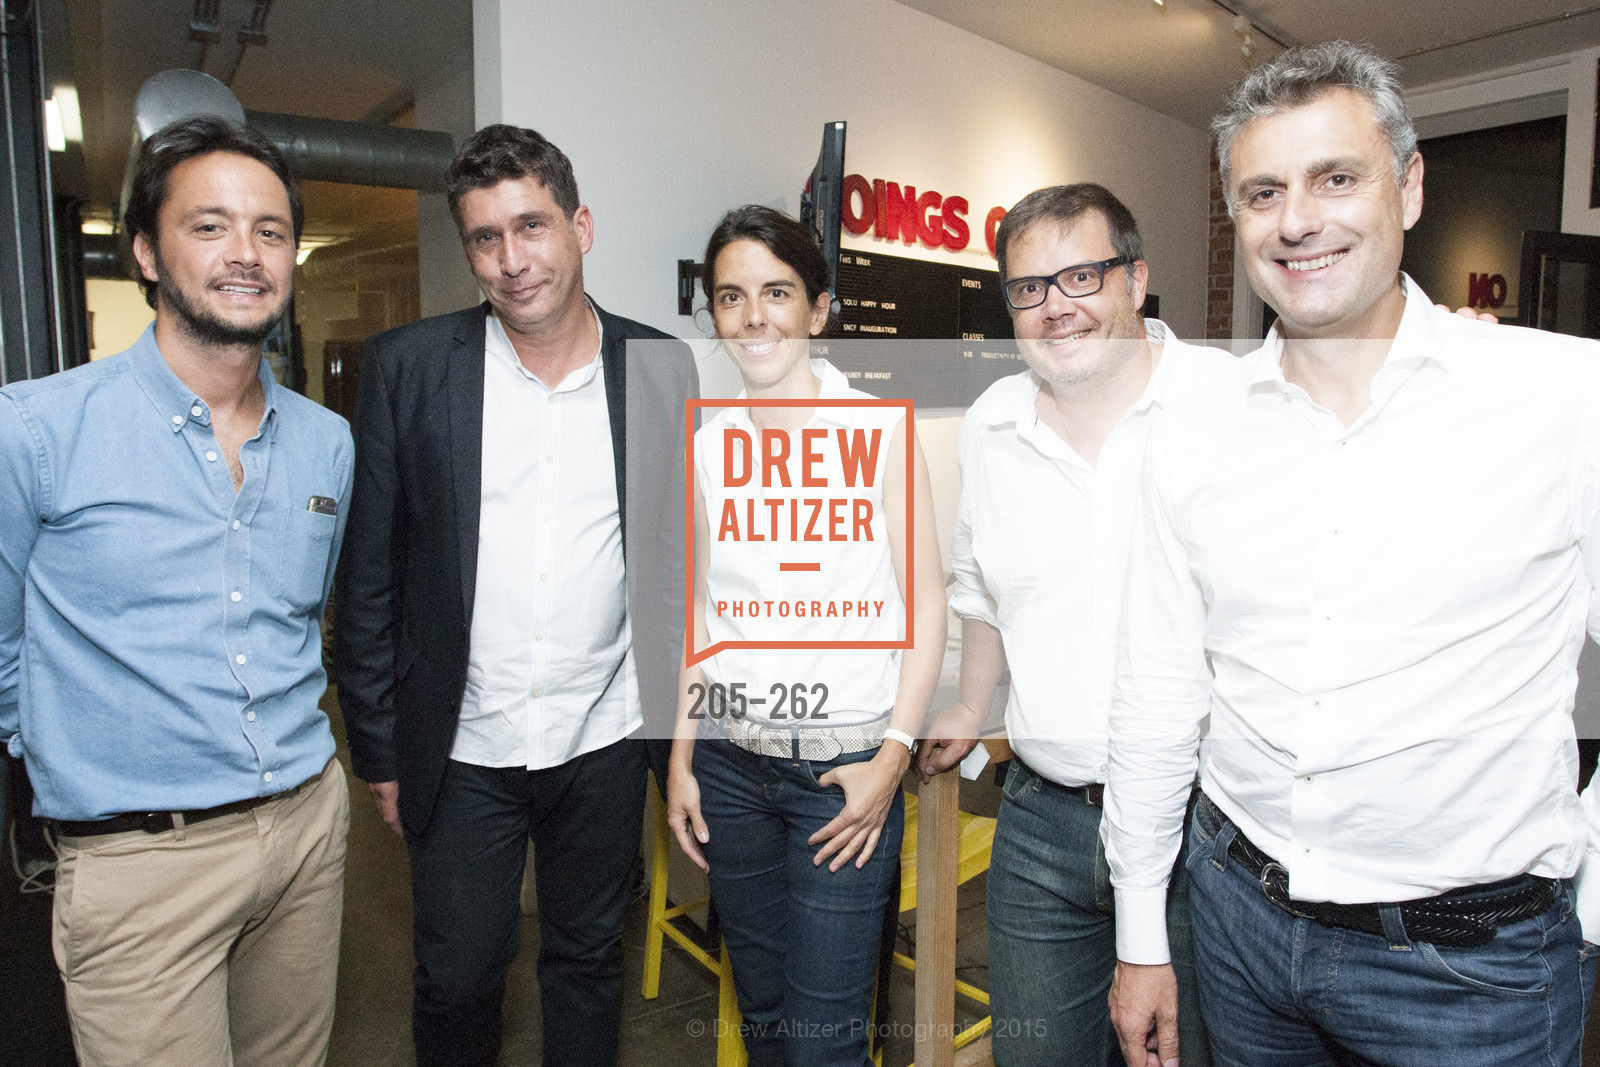 Florent Peyre, Dominique Piotet, Emmanuelle Turlotte, Gregory Renard, Yves Tyrode, Inauguration of SNCF Innovation Lab, 169 11th St, August 26th, 2015,Drew Altizer, Drew Altizer Photography, full-service agency, private events, San Francisco photographer, photographer california